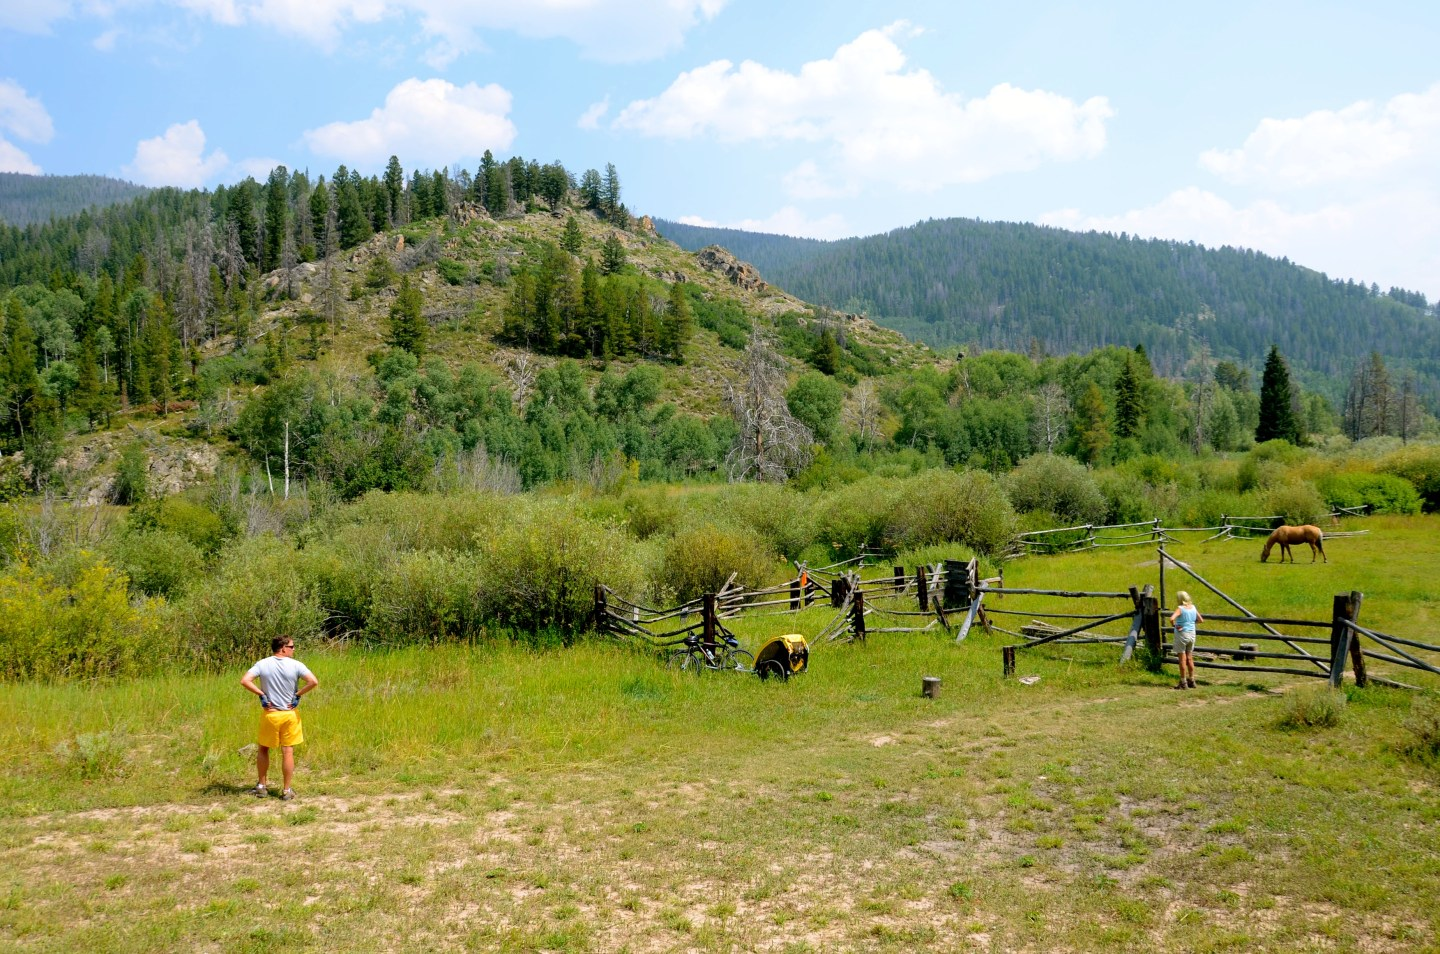 Things to do in Steamboat Springs in summer, riding horses